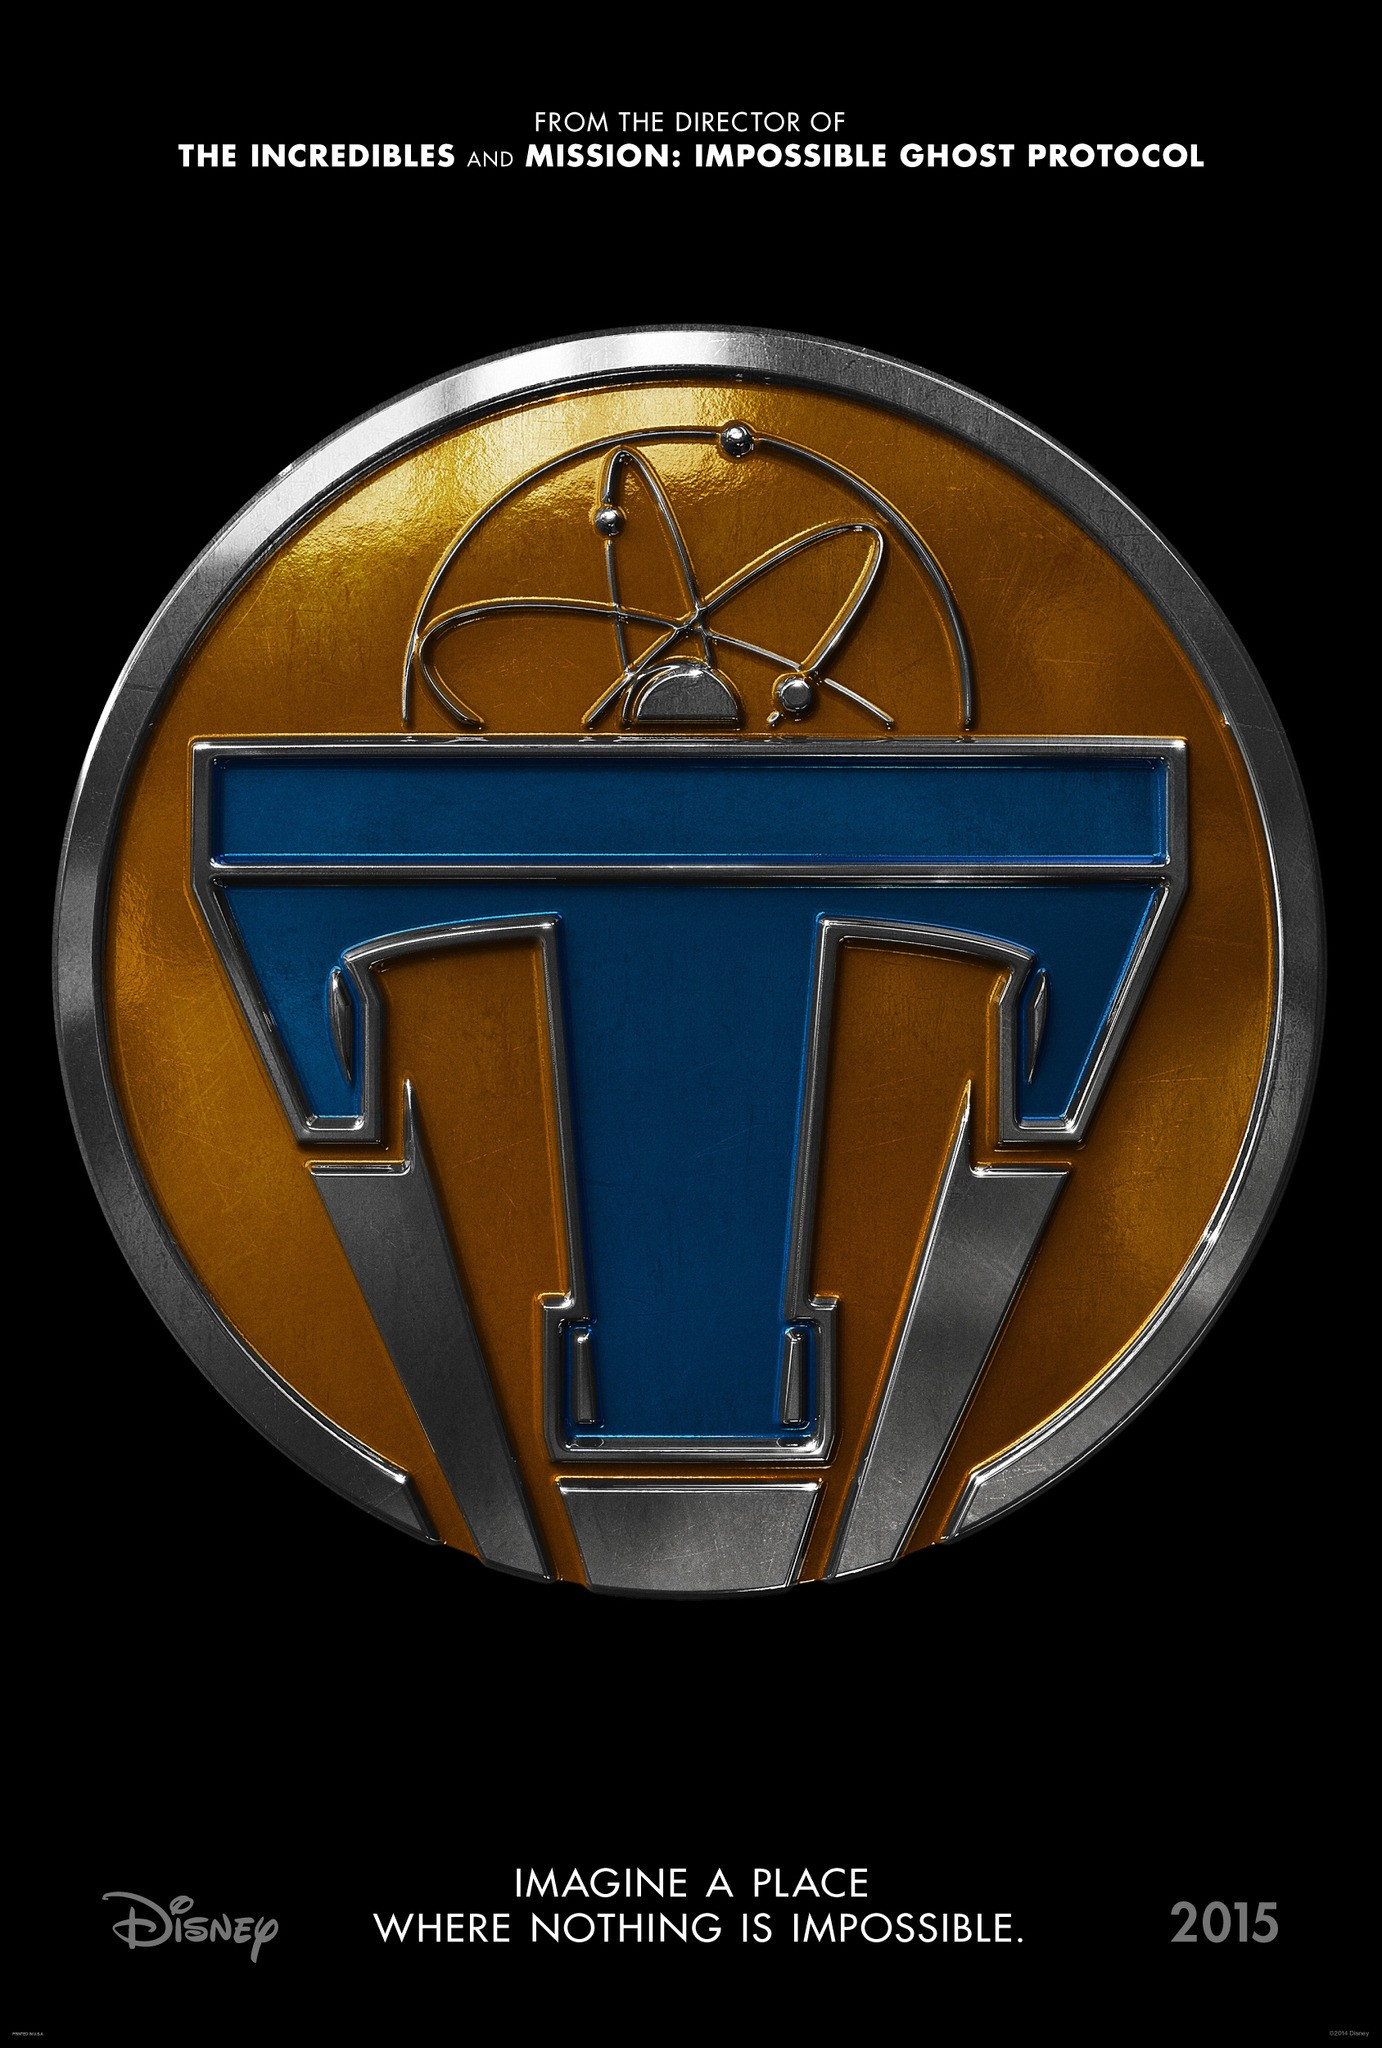 TOMORROWLAND-Official Poster Banner XXLG-10OUTUBRO2014-01